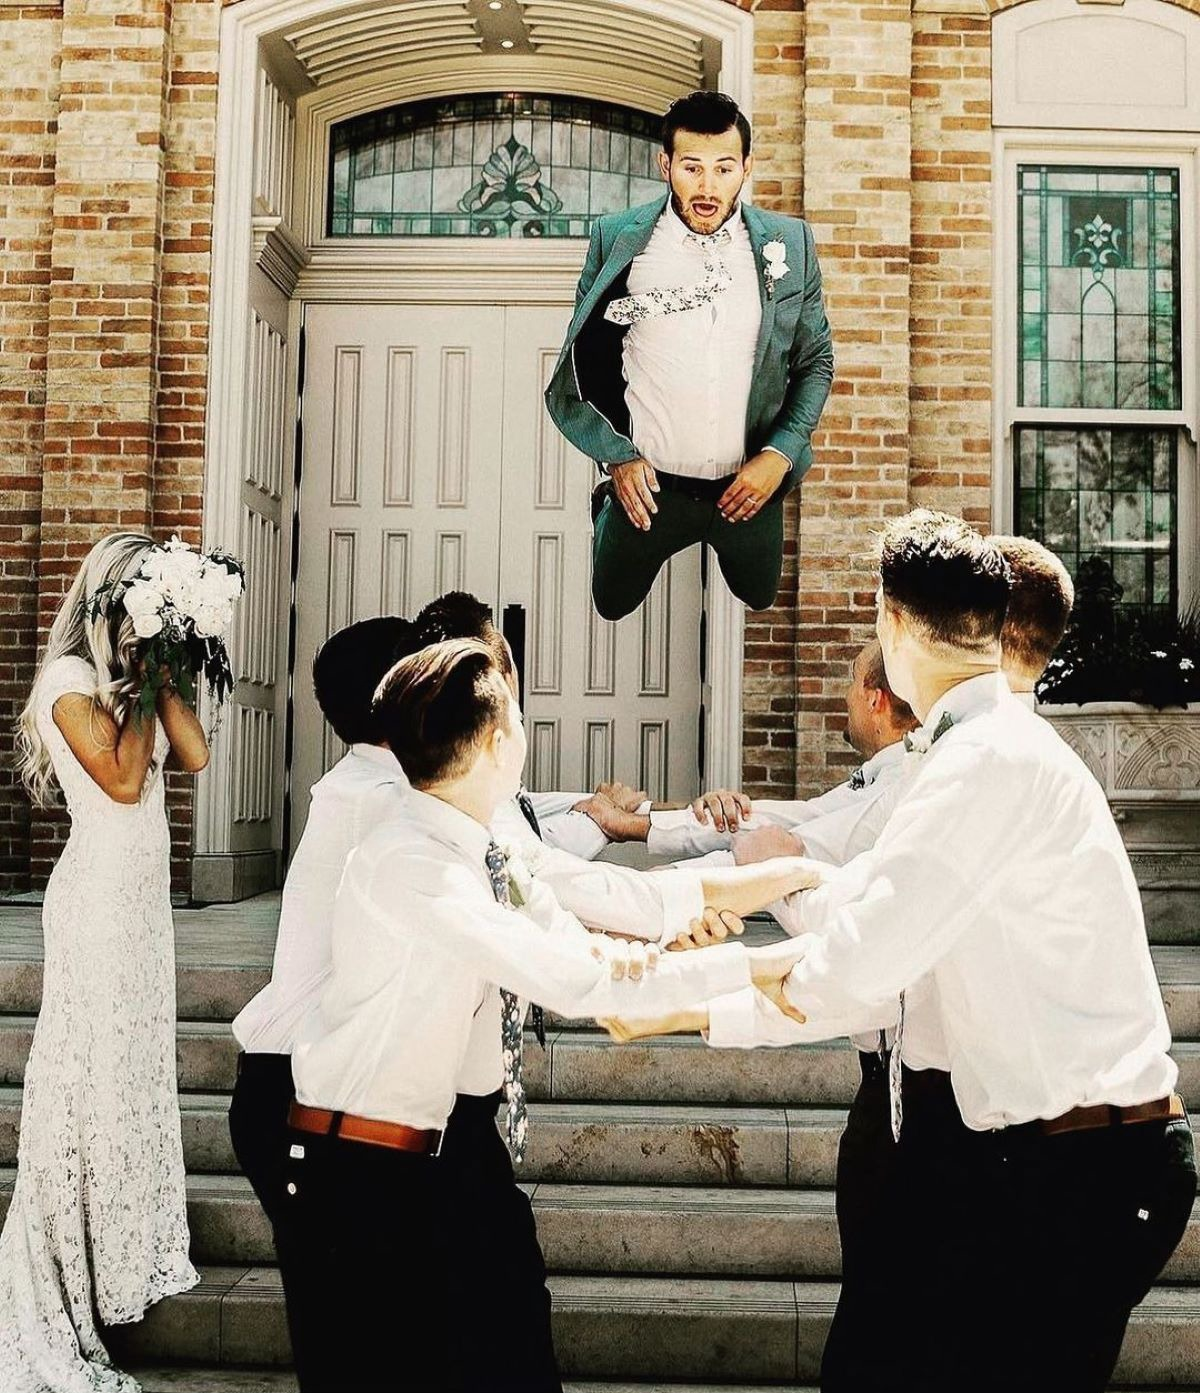 Clever Wedding Ideas To Make Your Big Day Stand Out